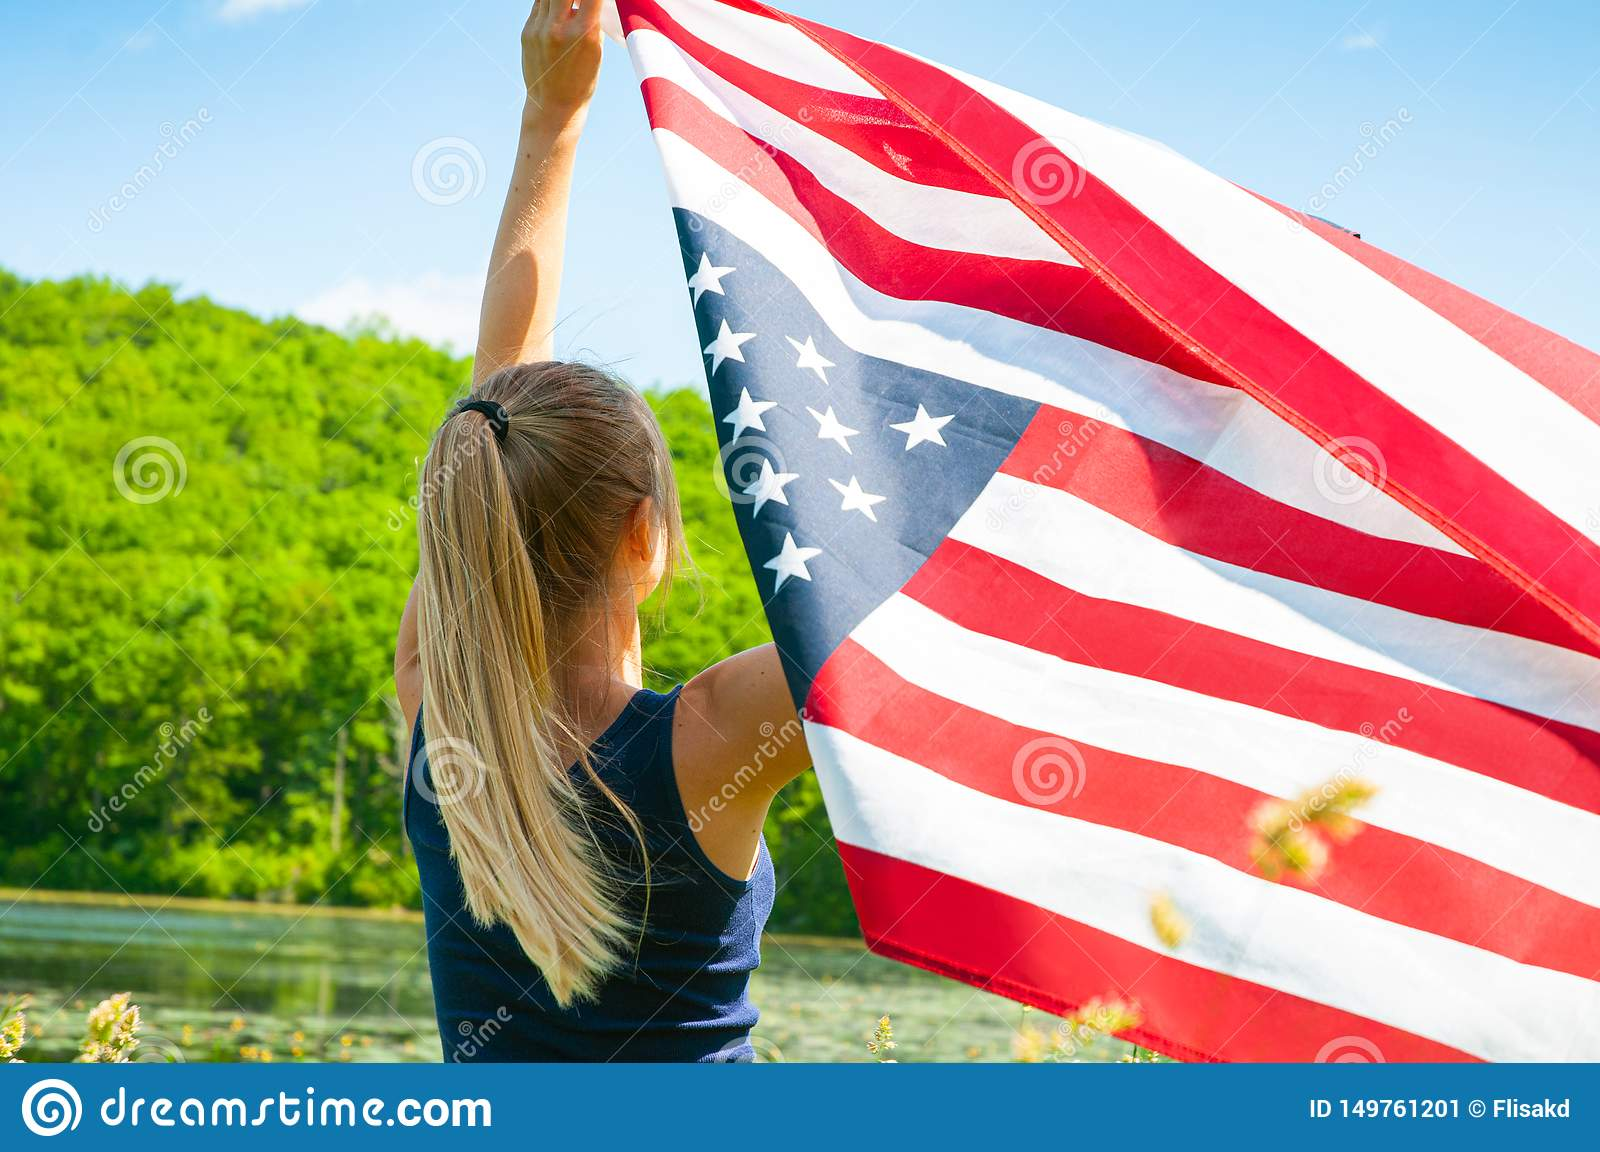 Woman holding American flag outdoors. United States celebrate 4th of July Independence Day